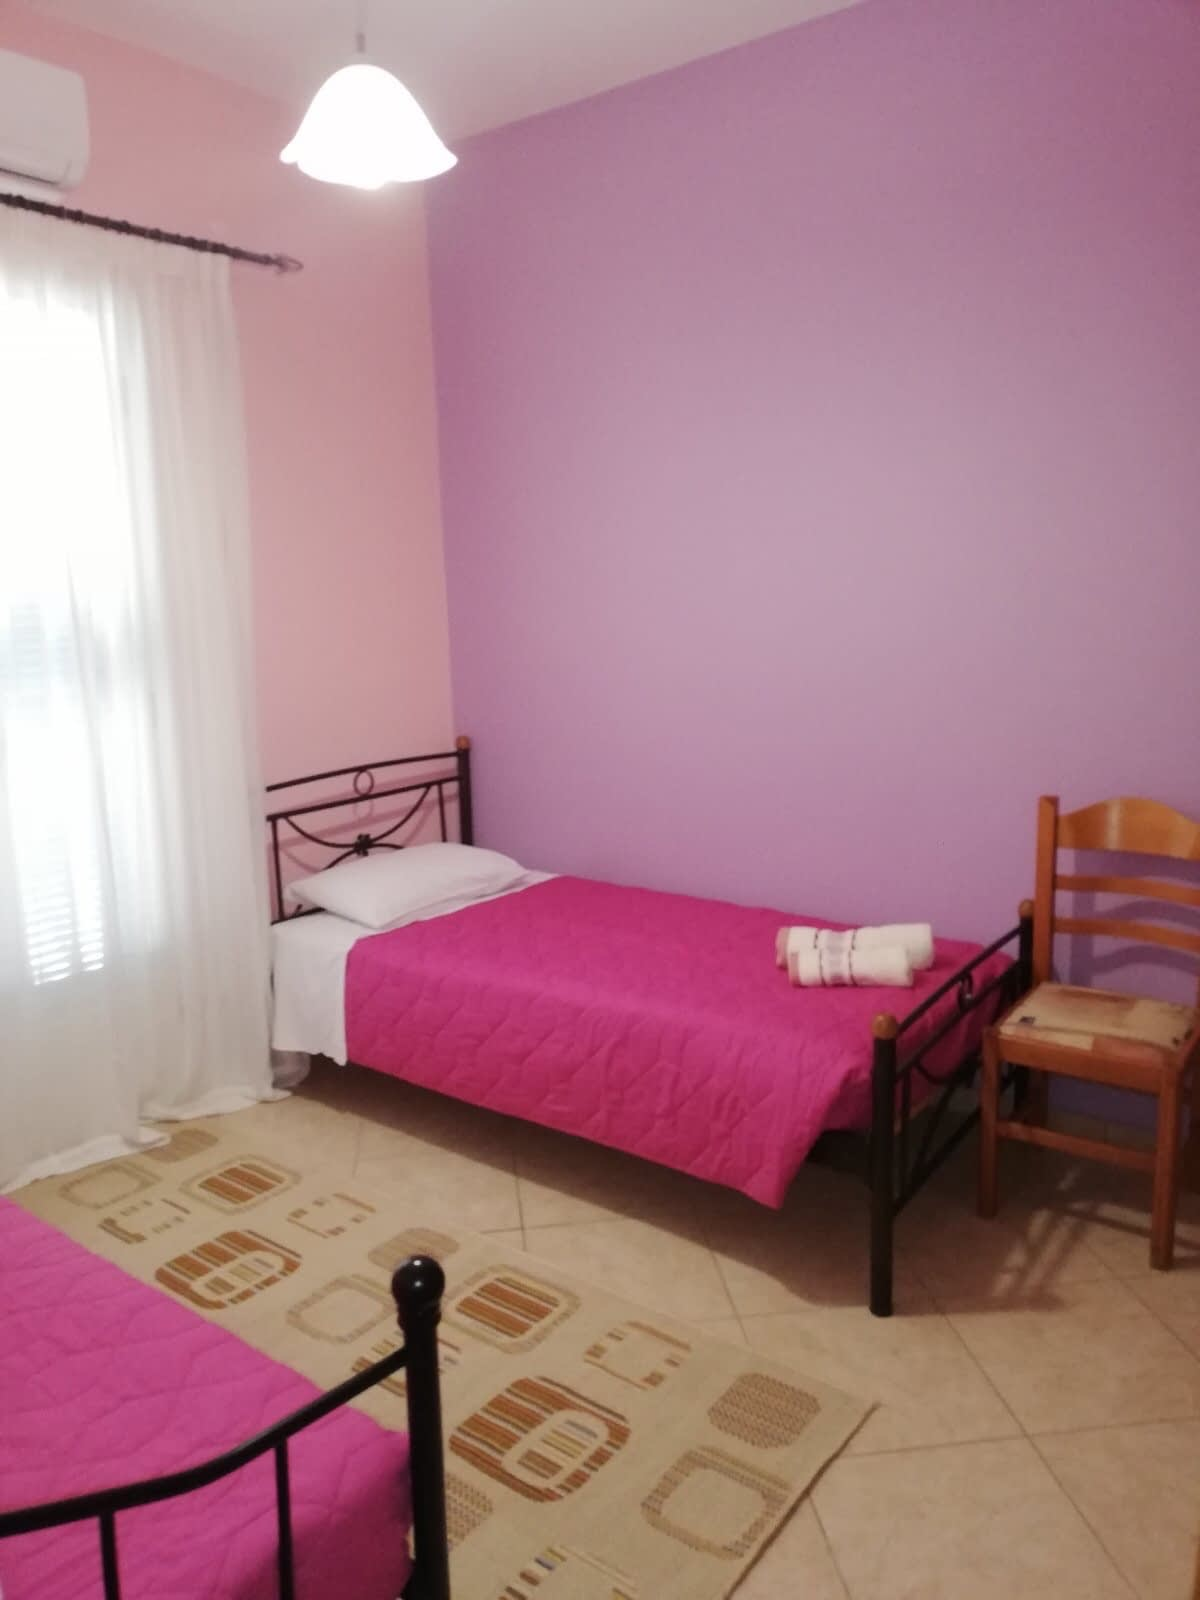 Twin bedroom of property for sale in Ithaca Greece Vathi